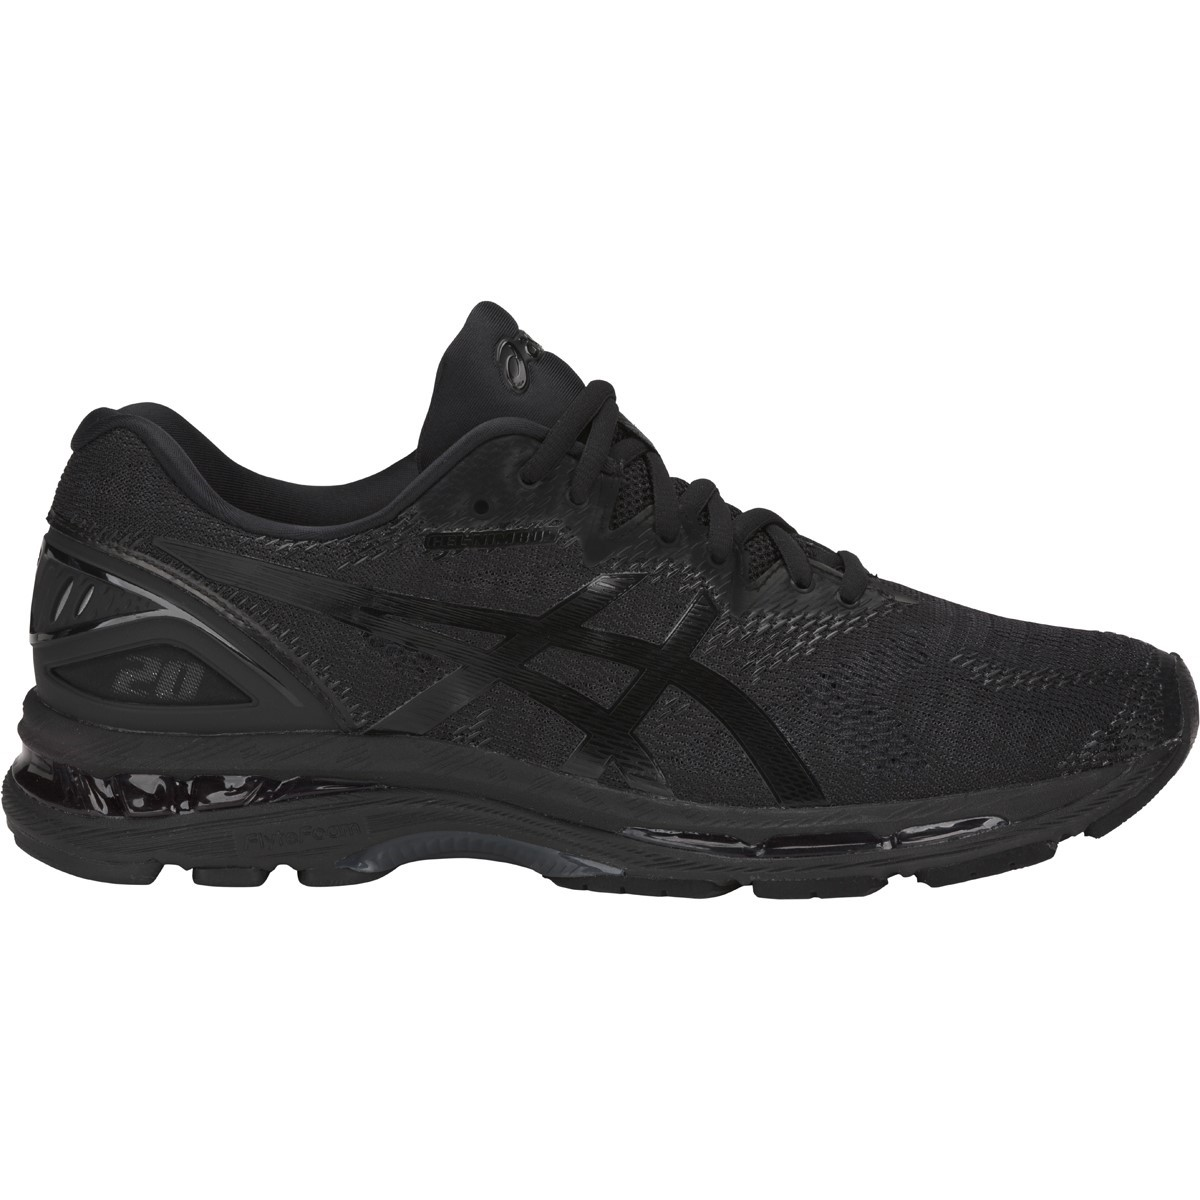 505d8f28d4db Asics Gel Nimbus 20 - Mens Running Shoes - Black Carbon